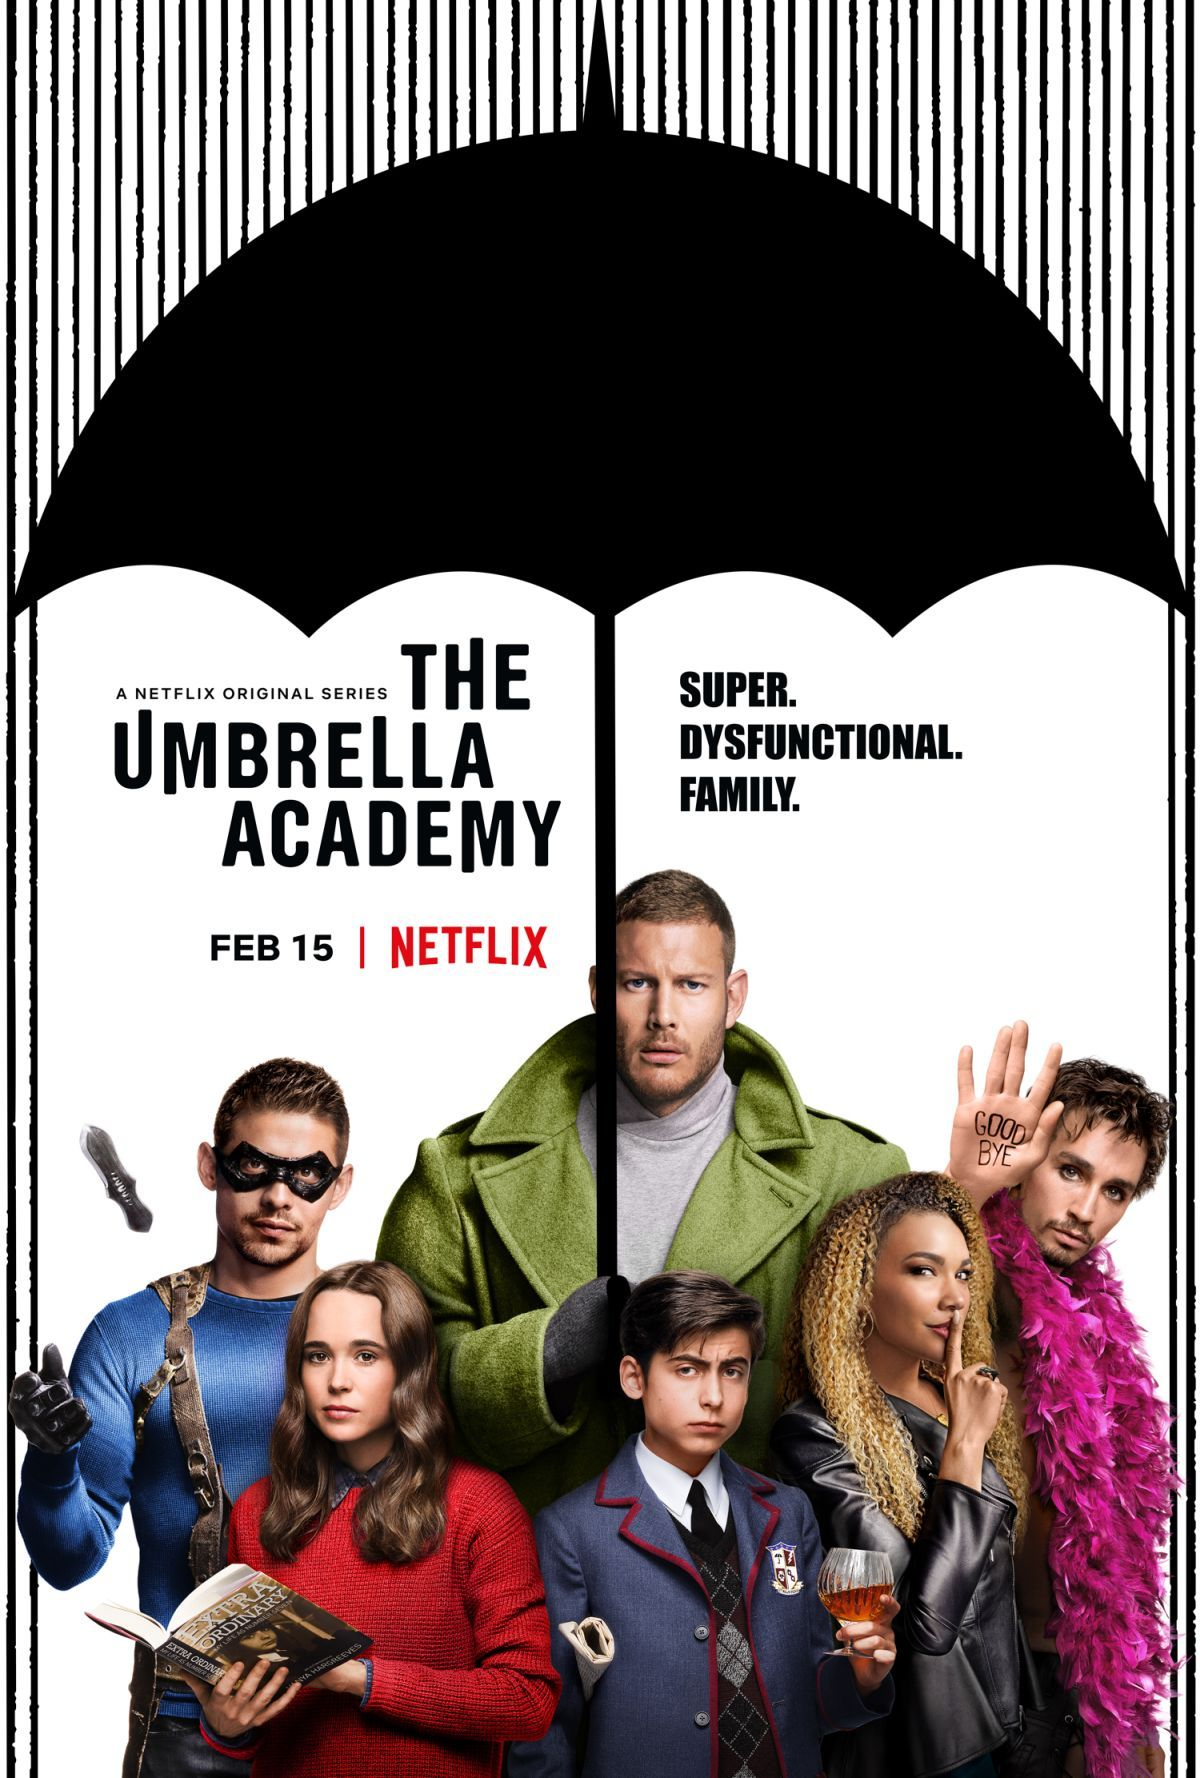 The Umbrella Academy S01 E03 Cut